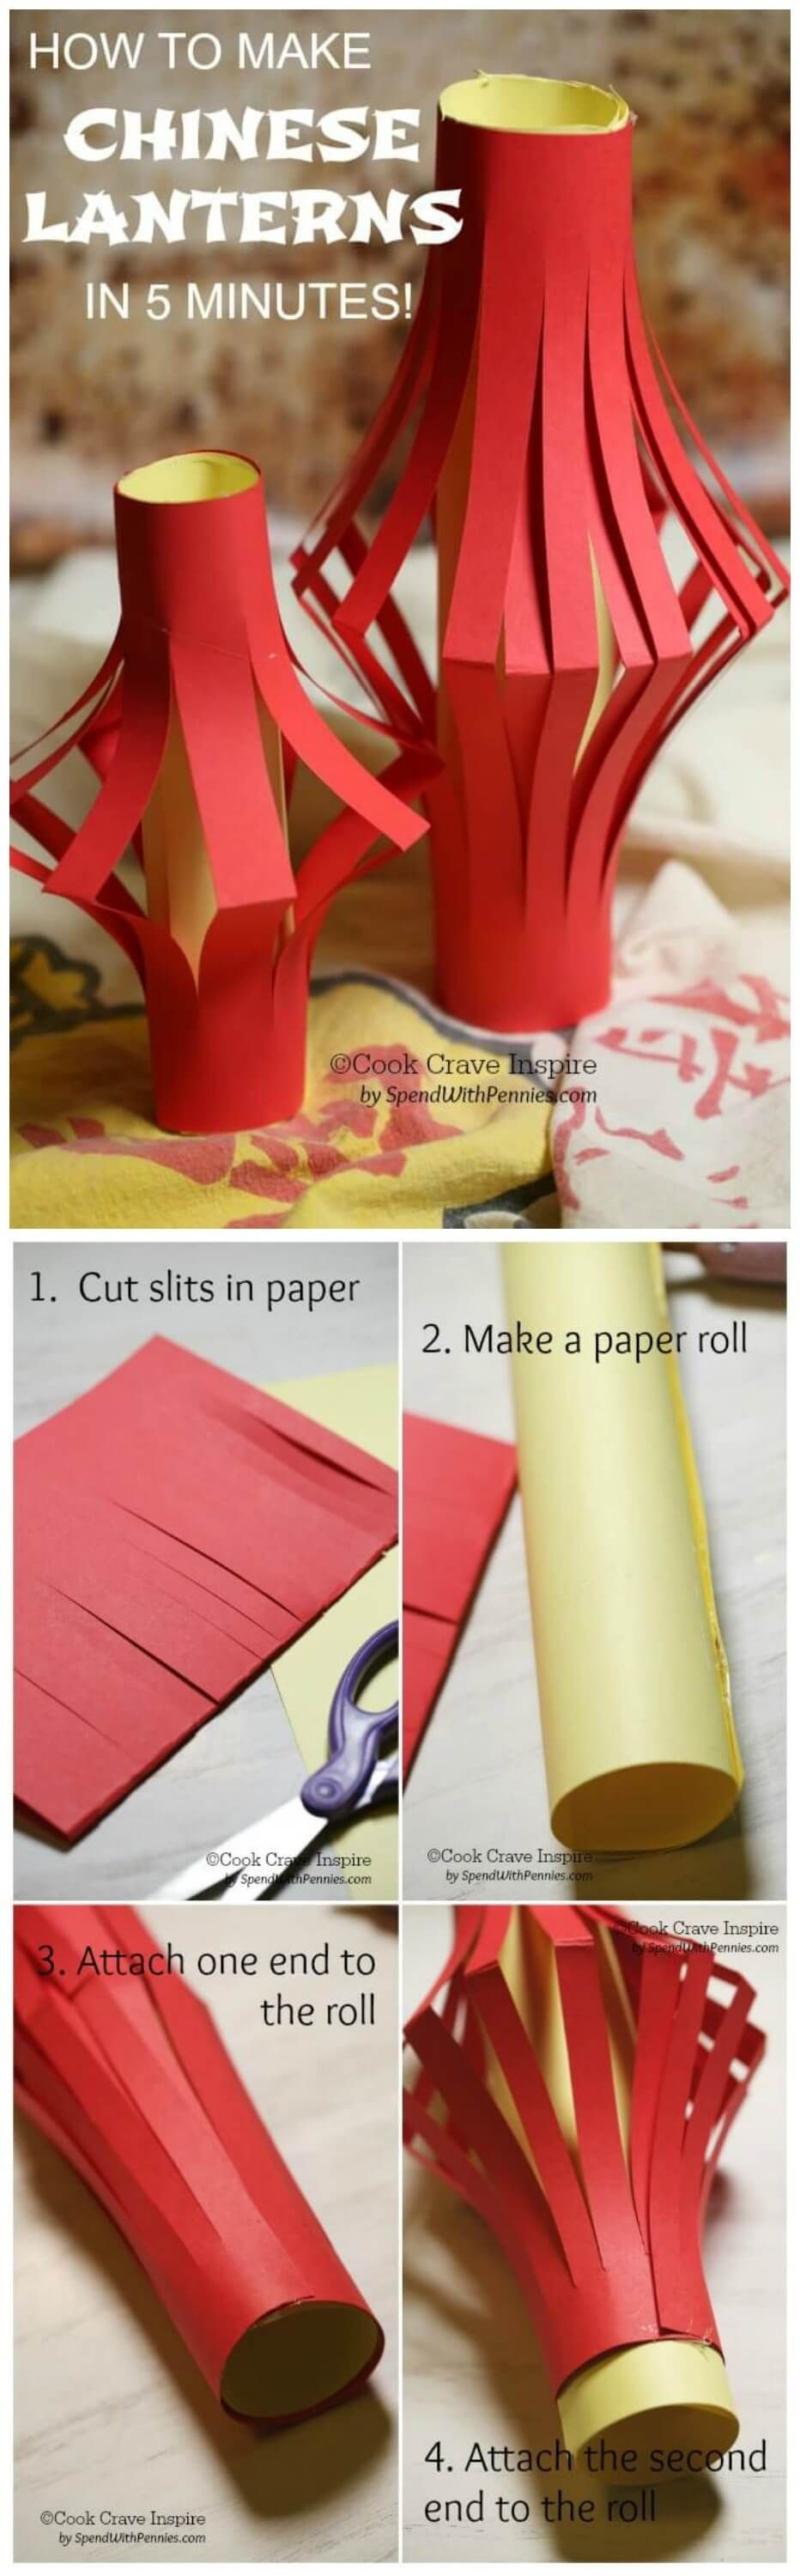 Did you know you can make your own Chinese lanterns in